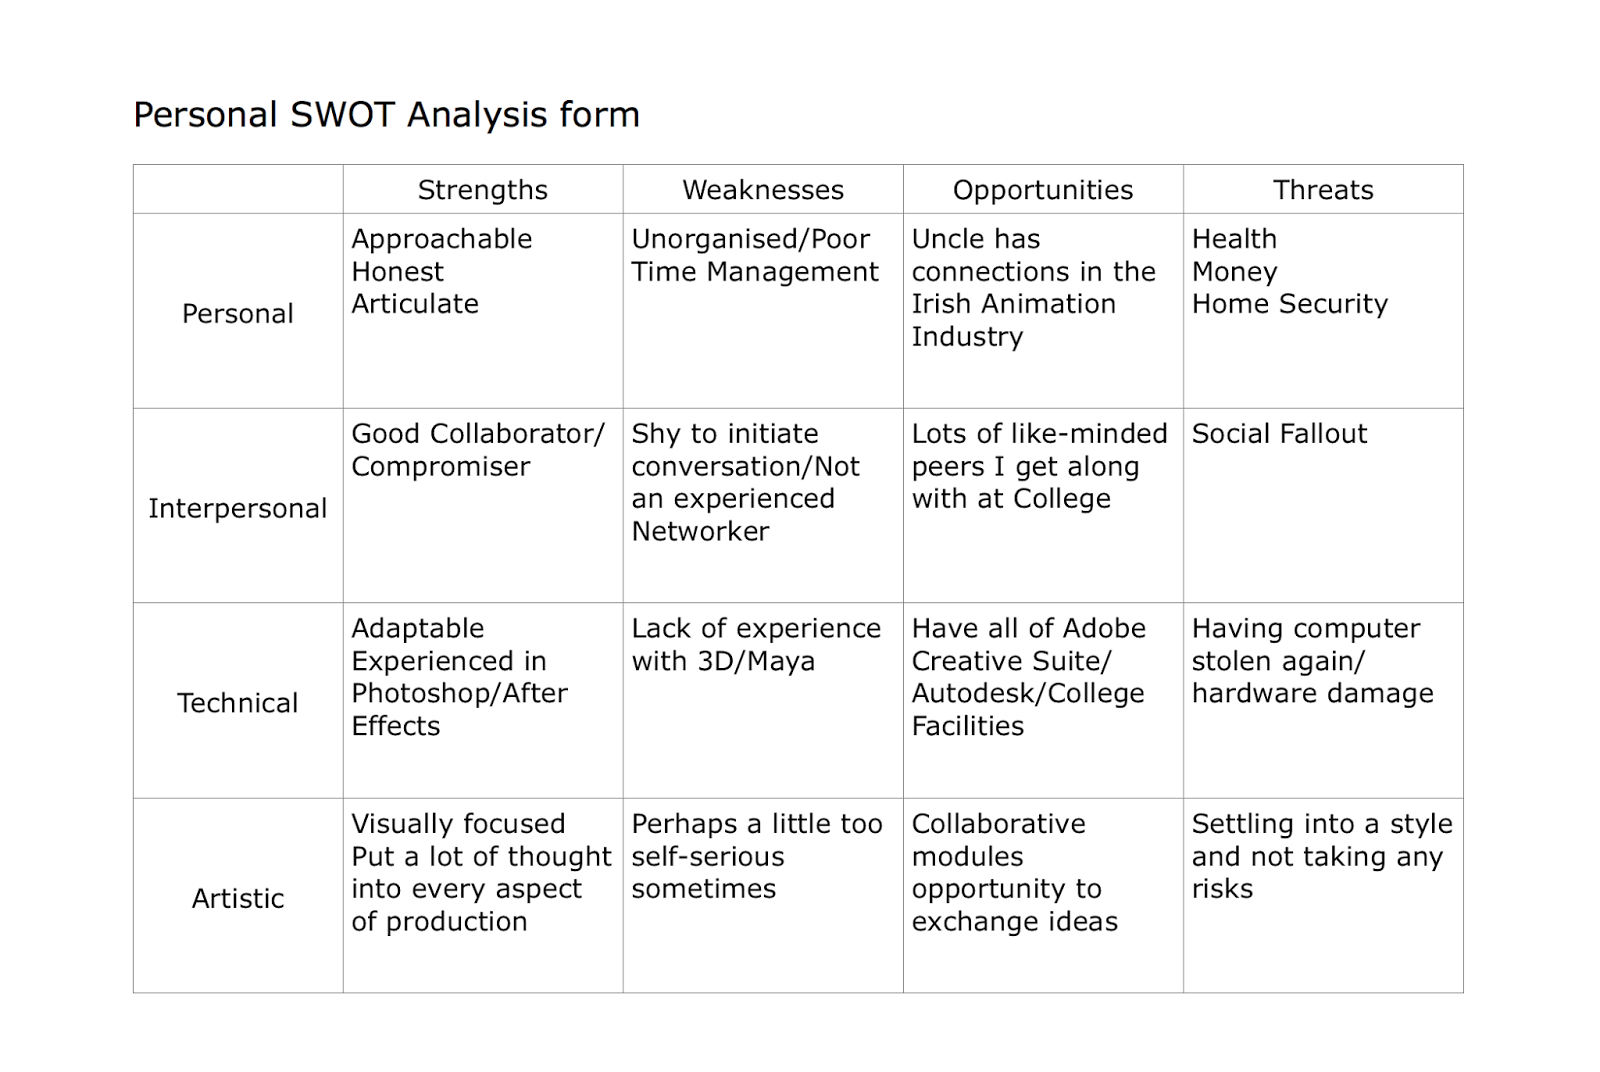 swot analysis of sasa hk Swot analysis takes an even narrower focus by centering on an individual firm specifically, swot analysis is a tool that considers a firm's s trengths and w eaknesses along with the o pportunities and t hreats that exist in the firm's environment (swot [image missing in original] .